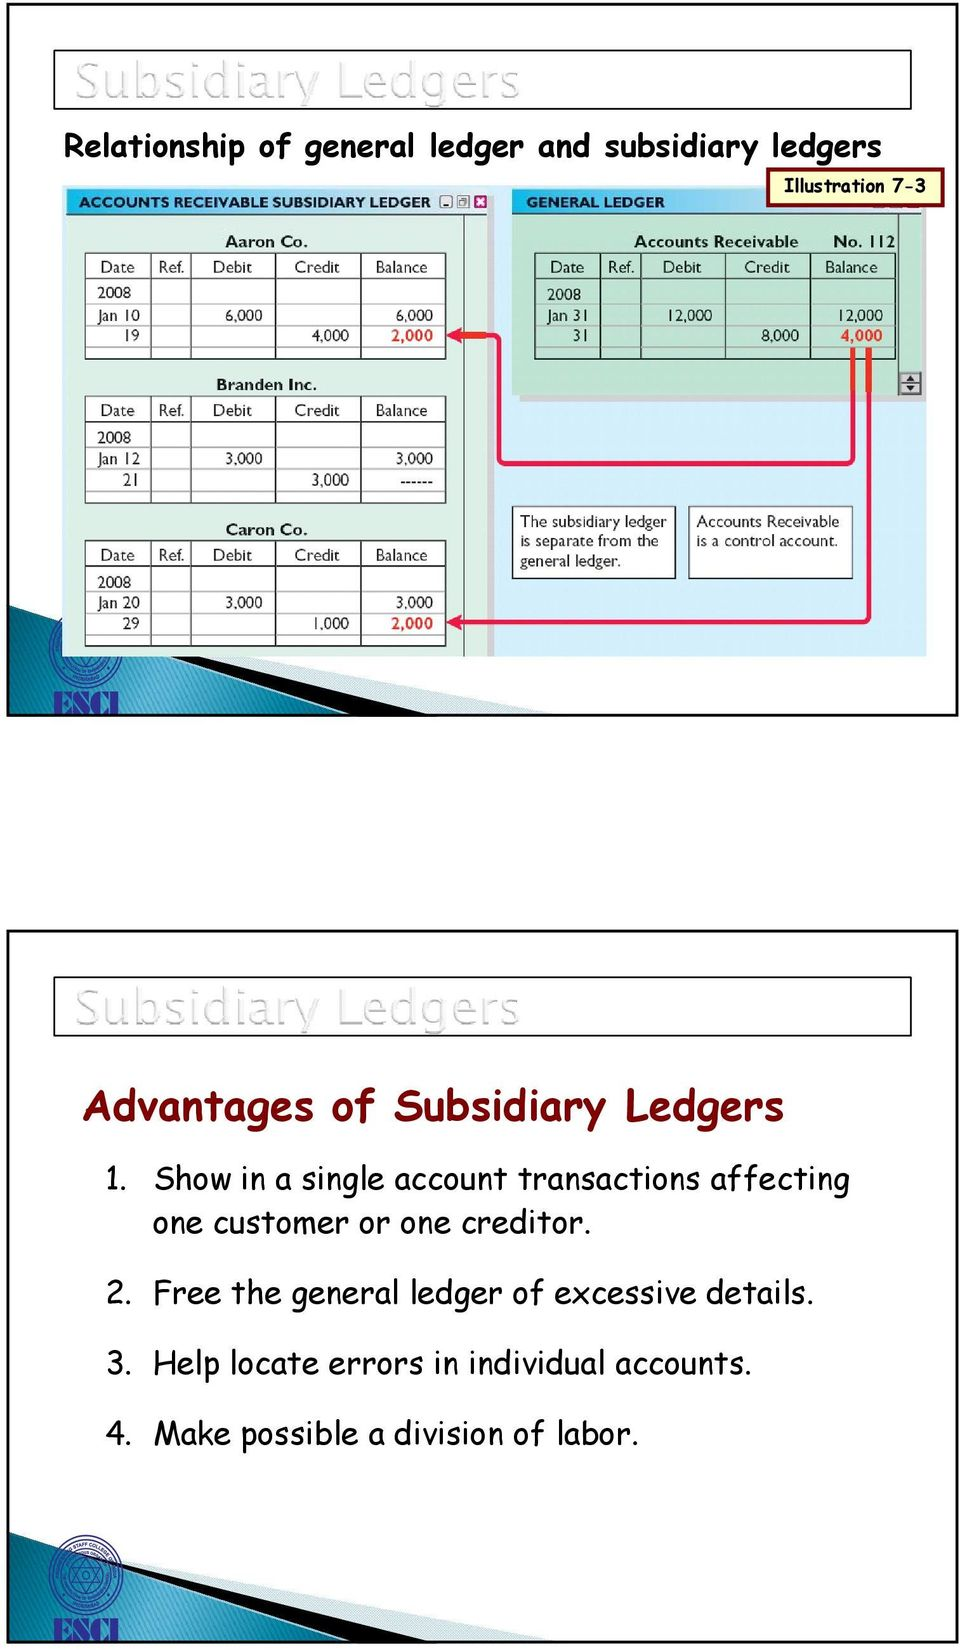 Show in a single account transactions affecting one customer or one creditor. 2.